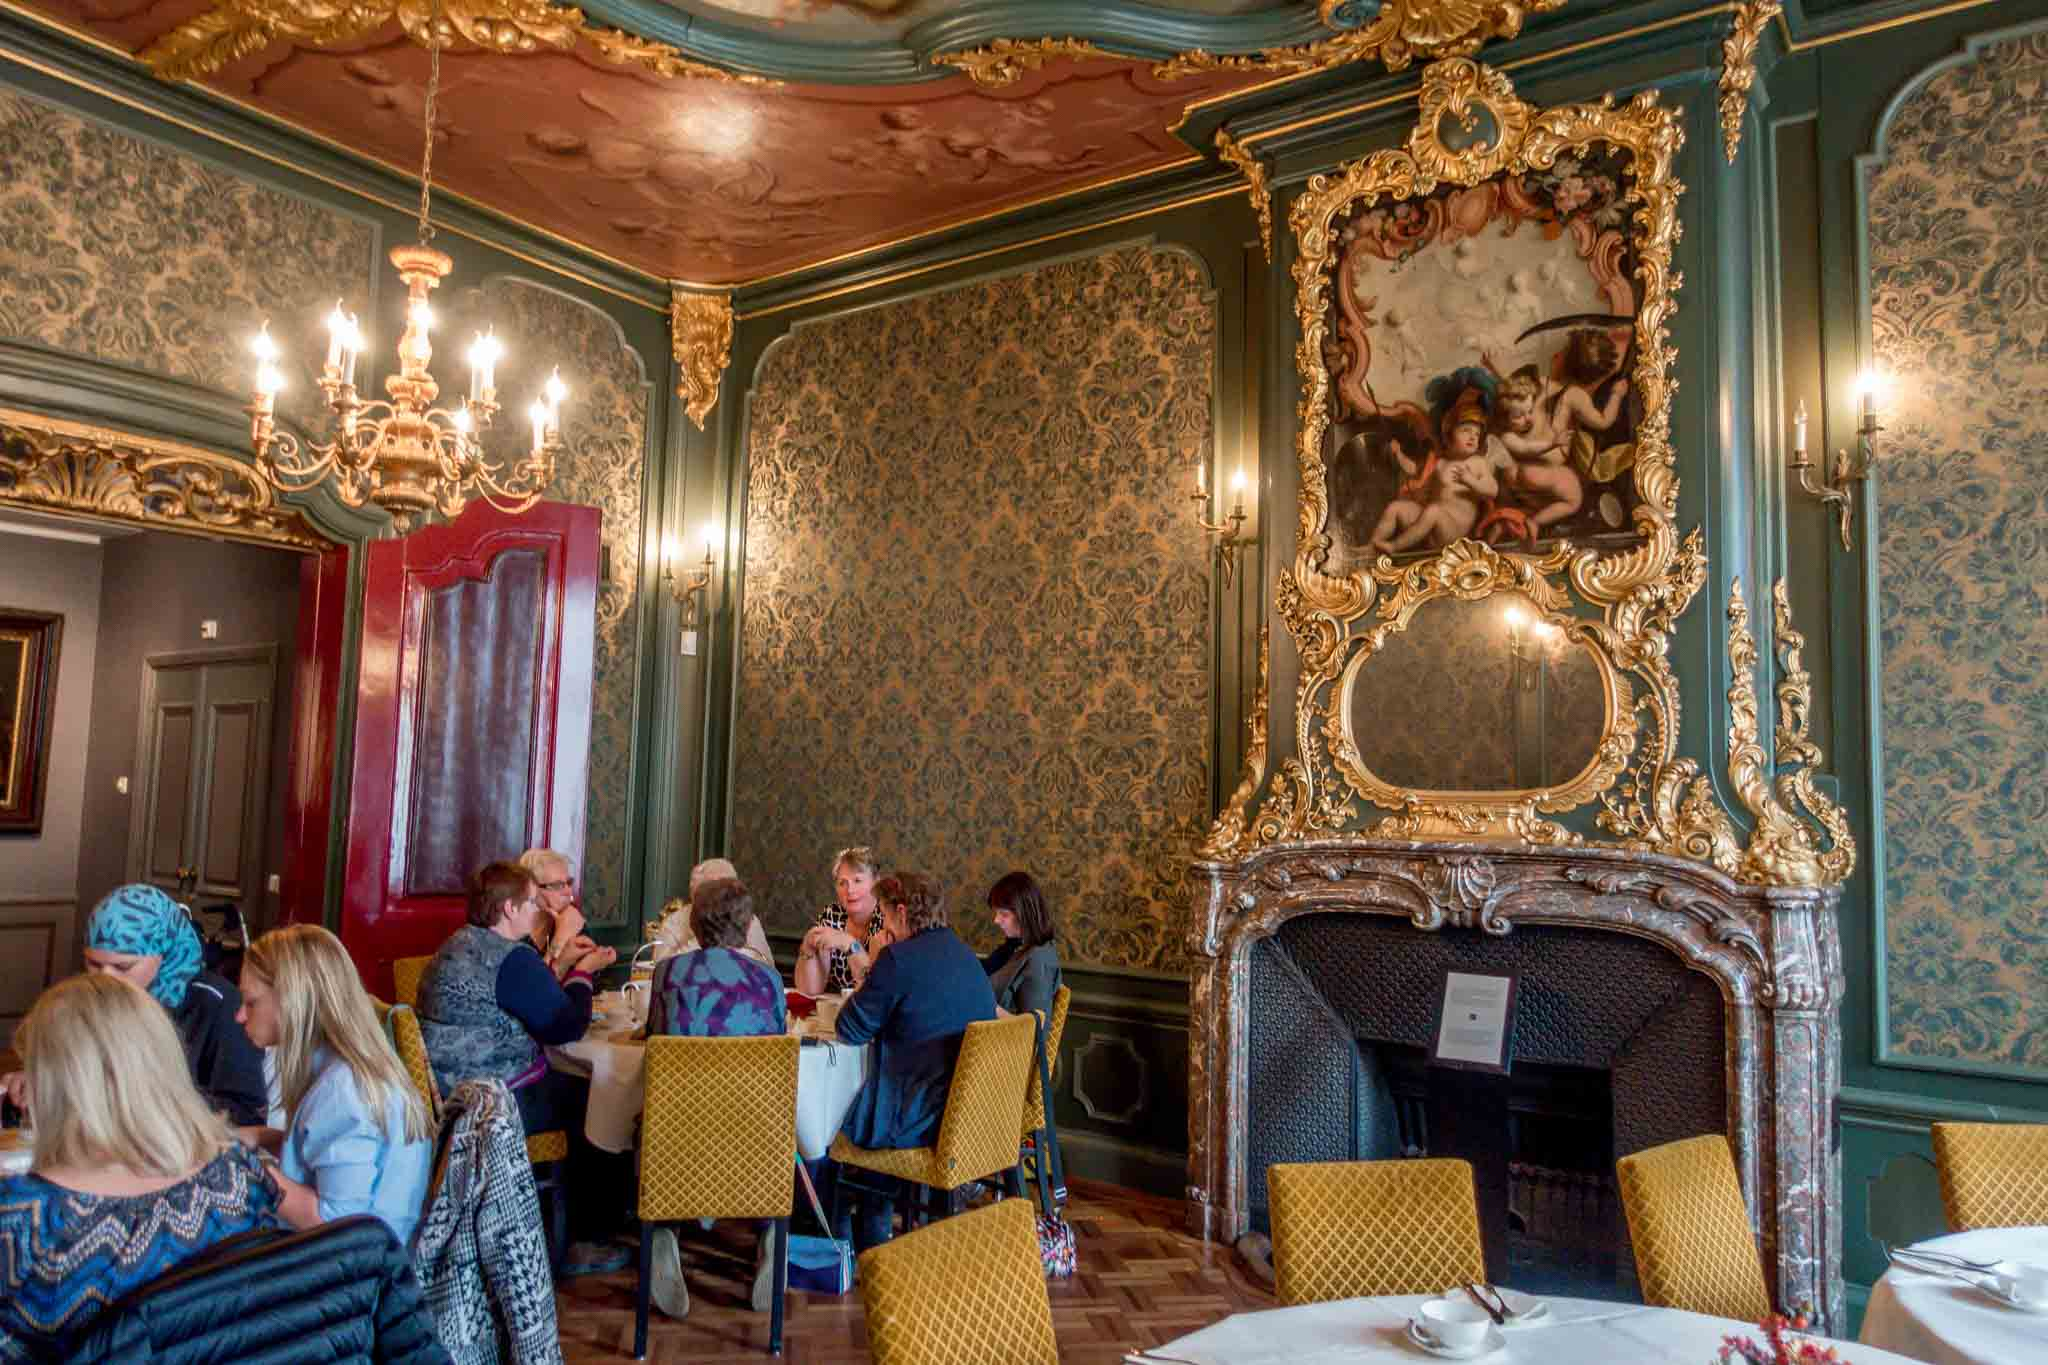 People in tea room decorated with brocade wallpaper and ornate fireplace